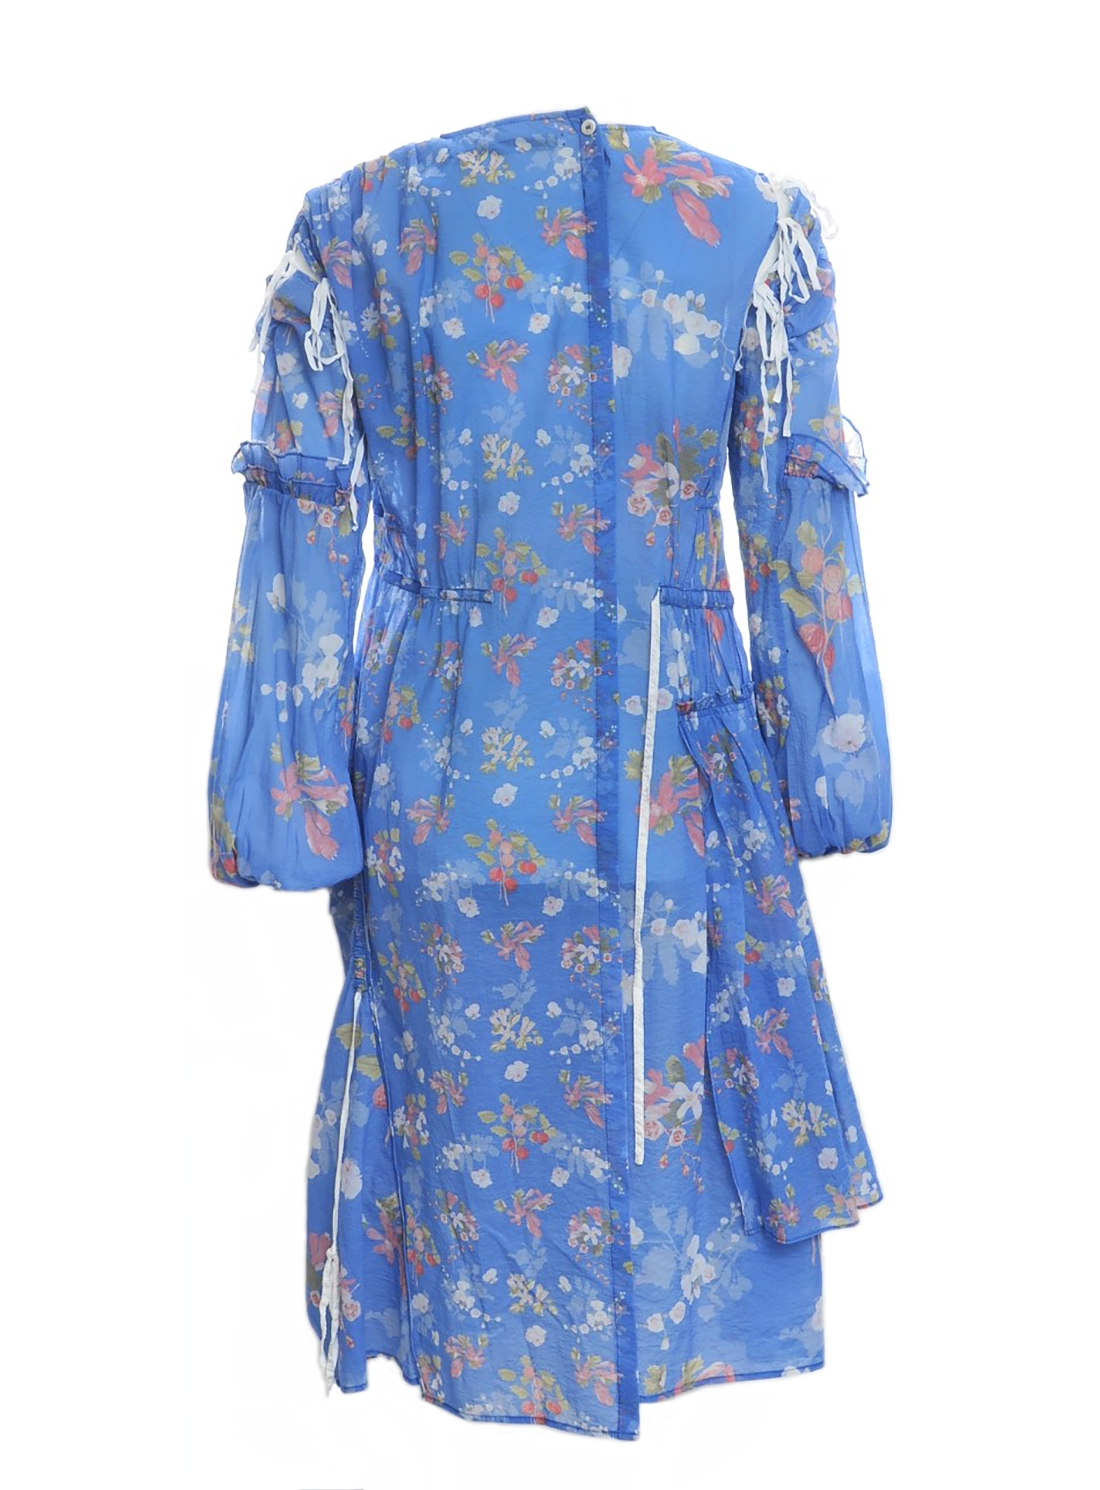 24429-young-british-designers-blue-fruit-and-floral-dress-by-renli-su_raw.jpg